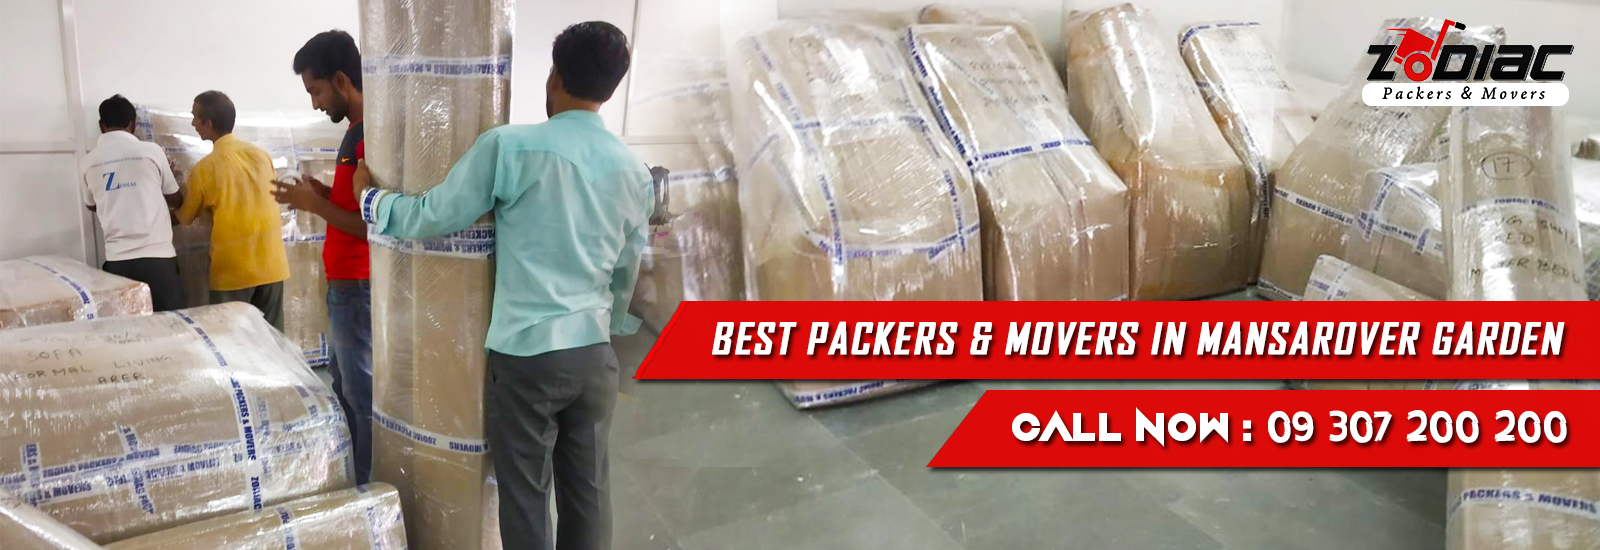 Packers and Movers in Mansarover Garden